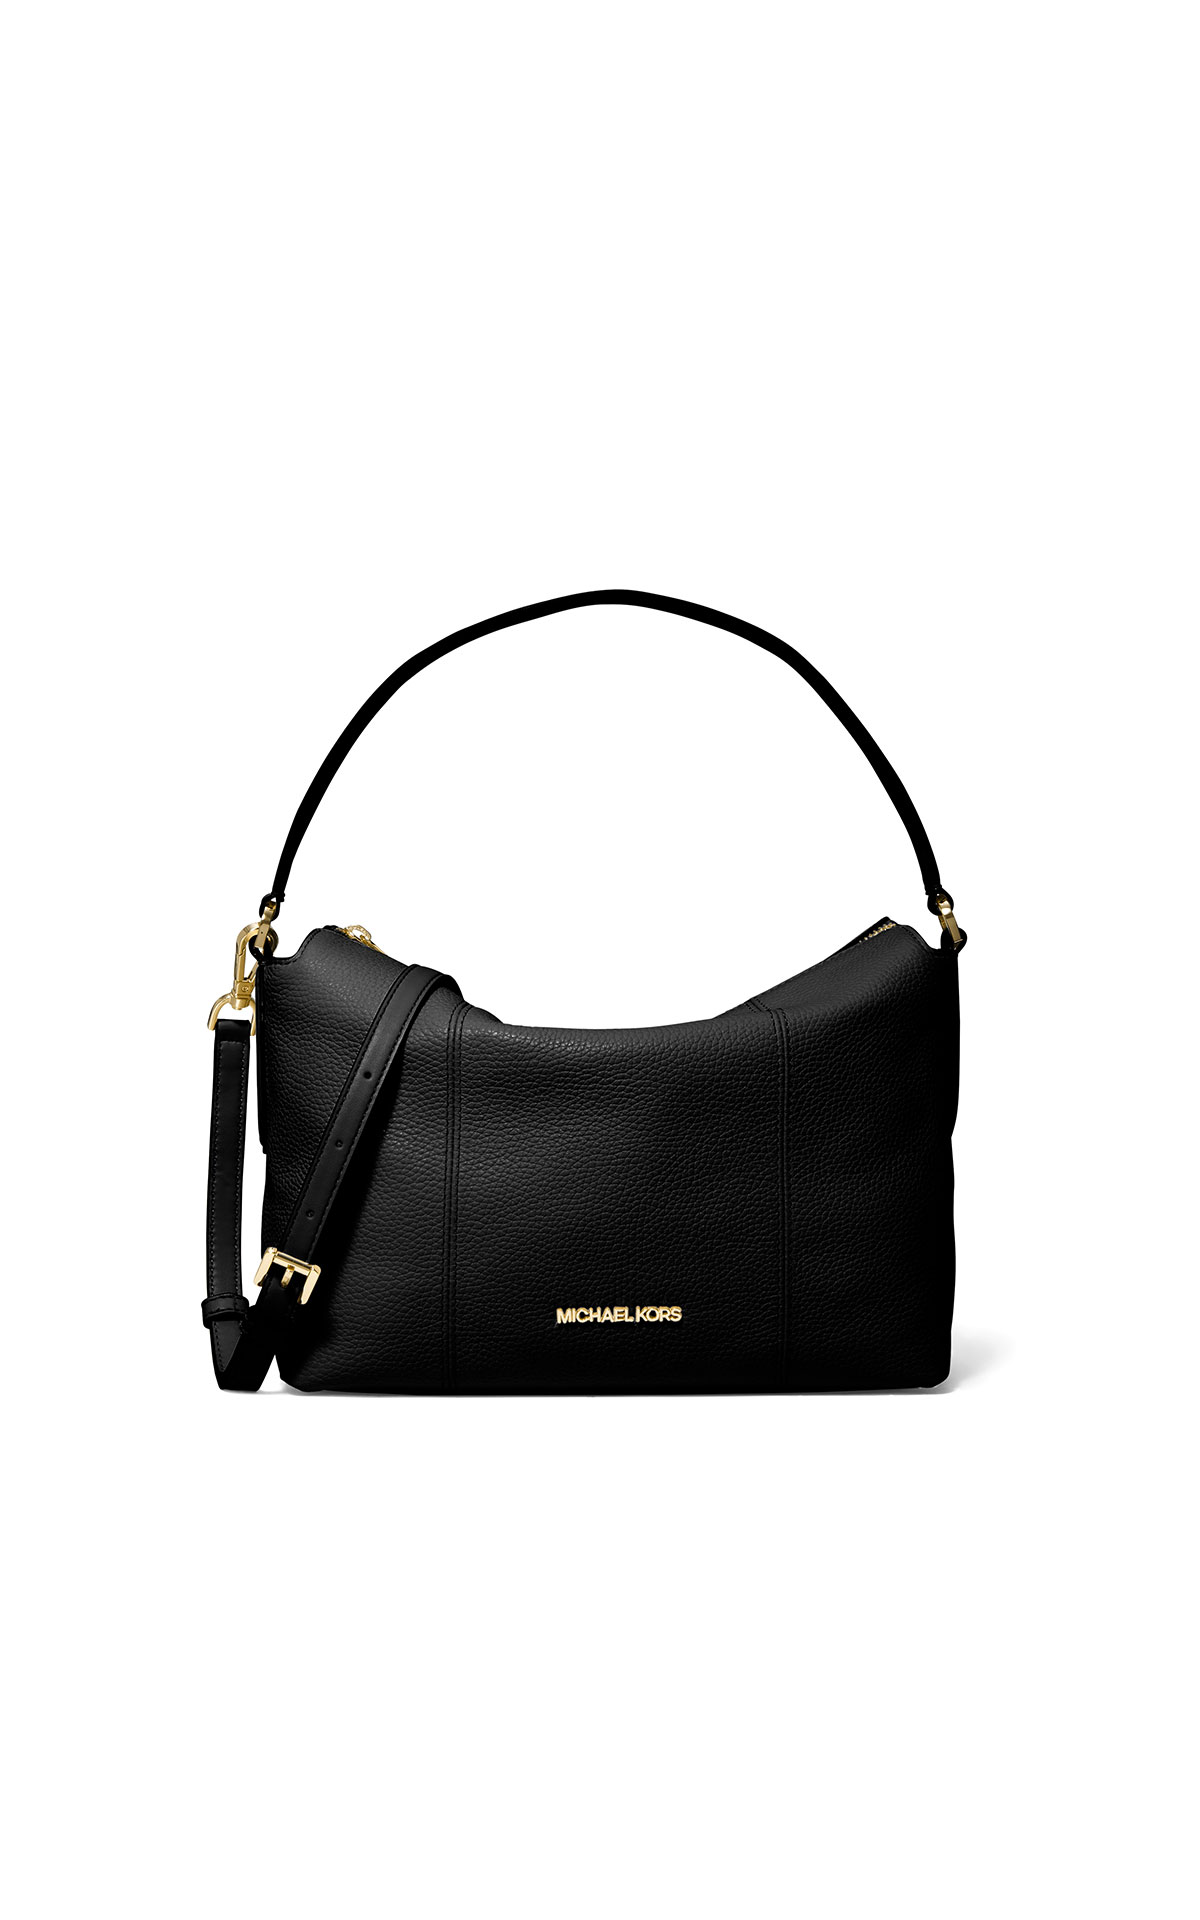 La Vallée Village Michael Kors Sac Brooke